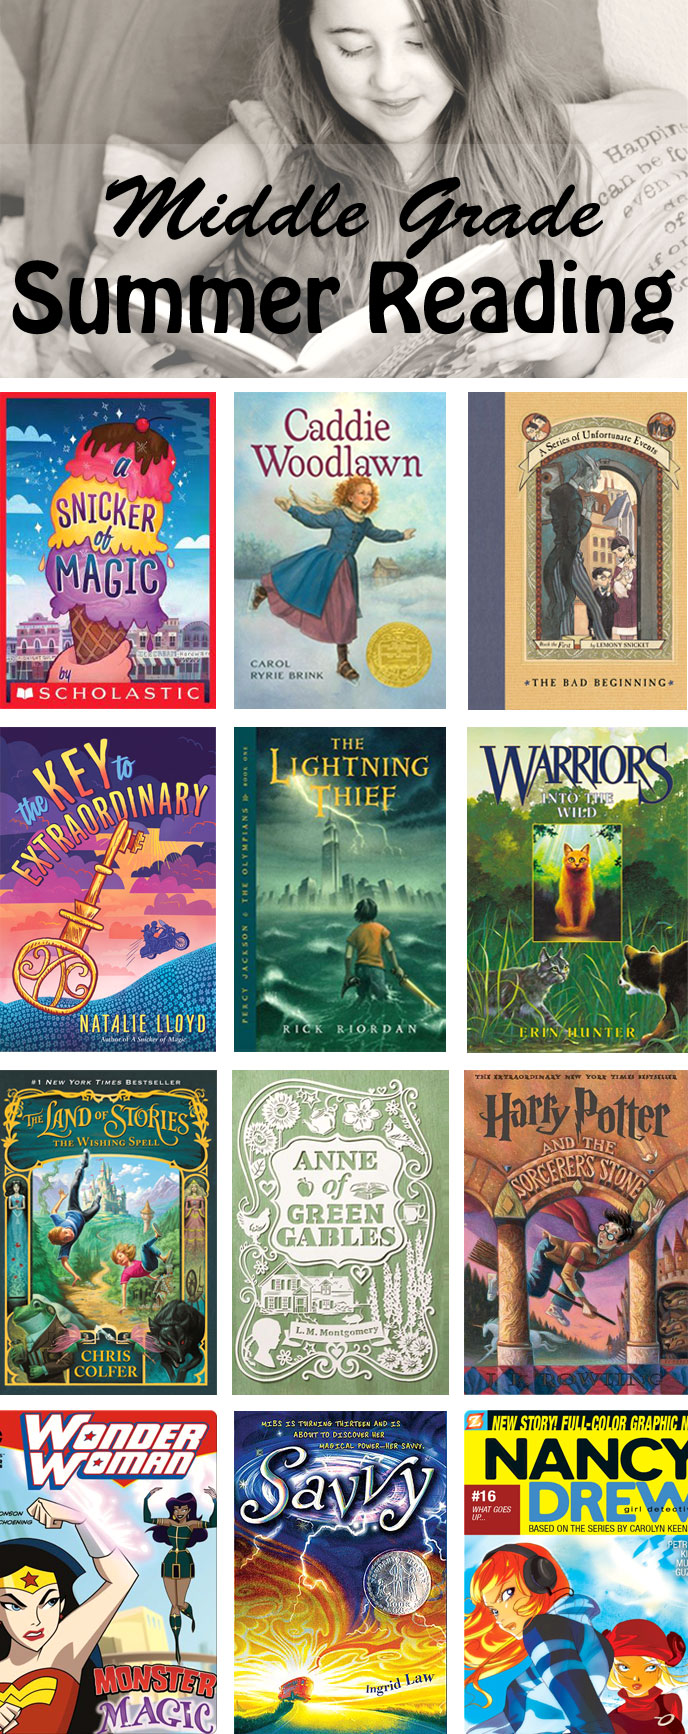 Summer Reading list for 8-12 year old girls! | Running With Spears #middlegrade #booklist